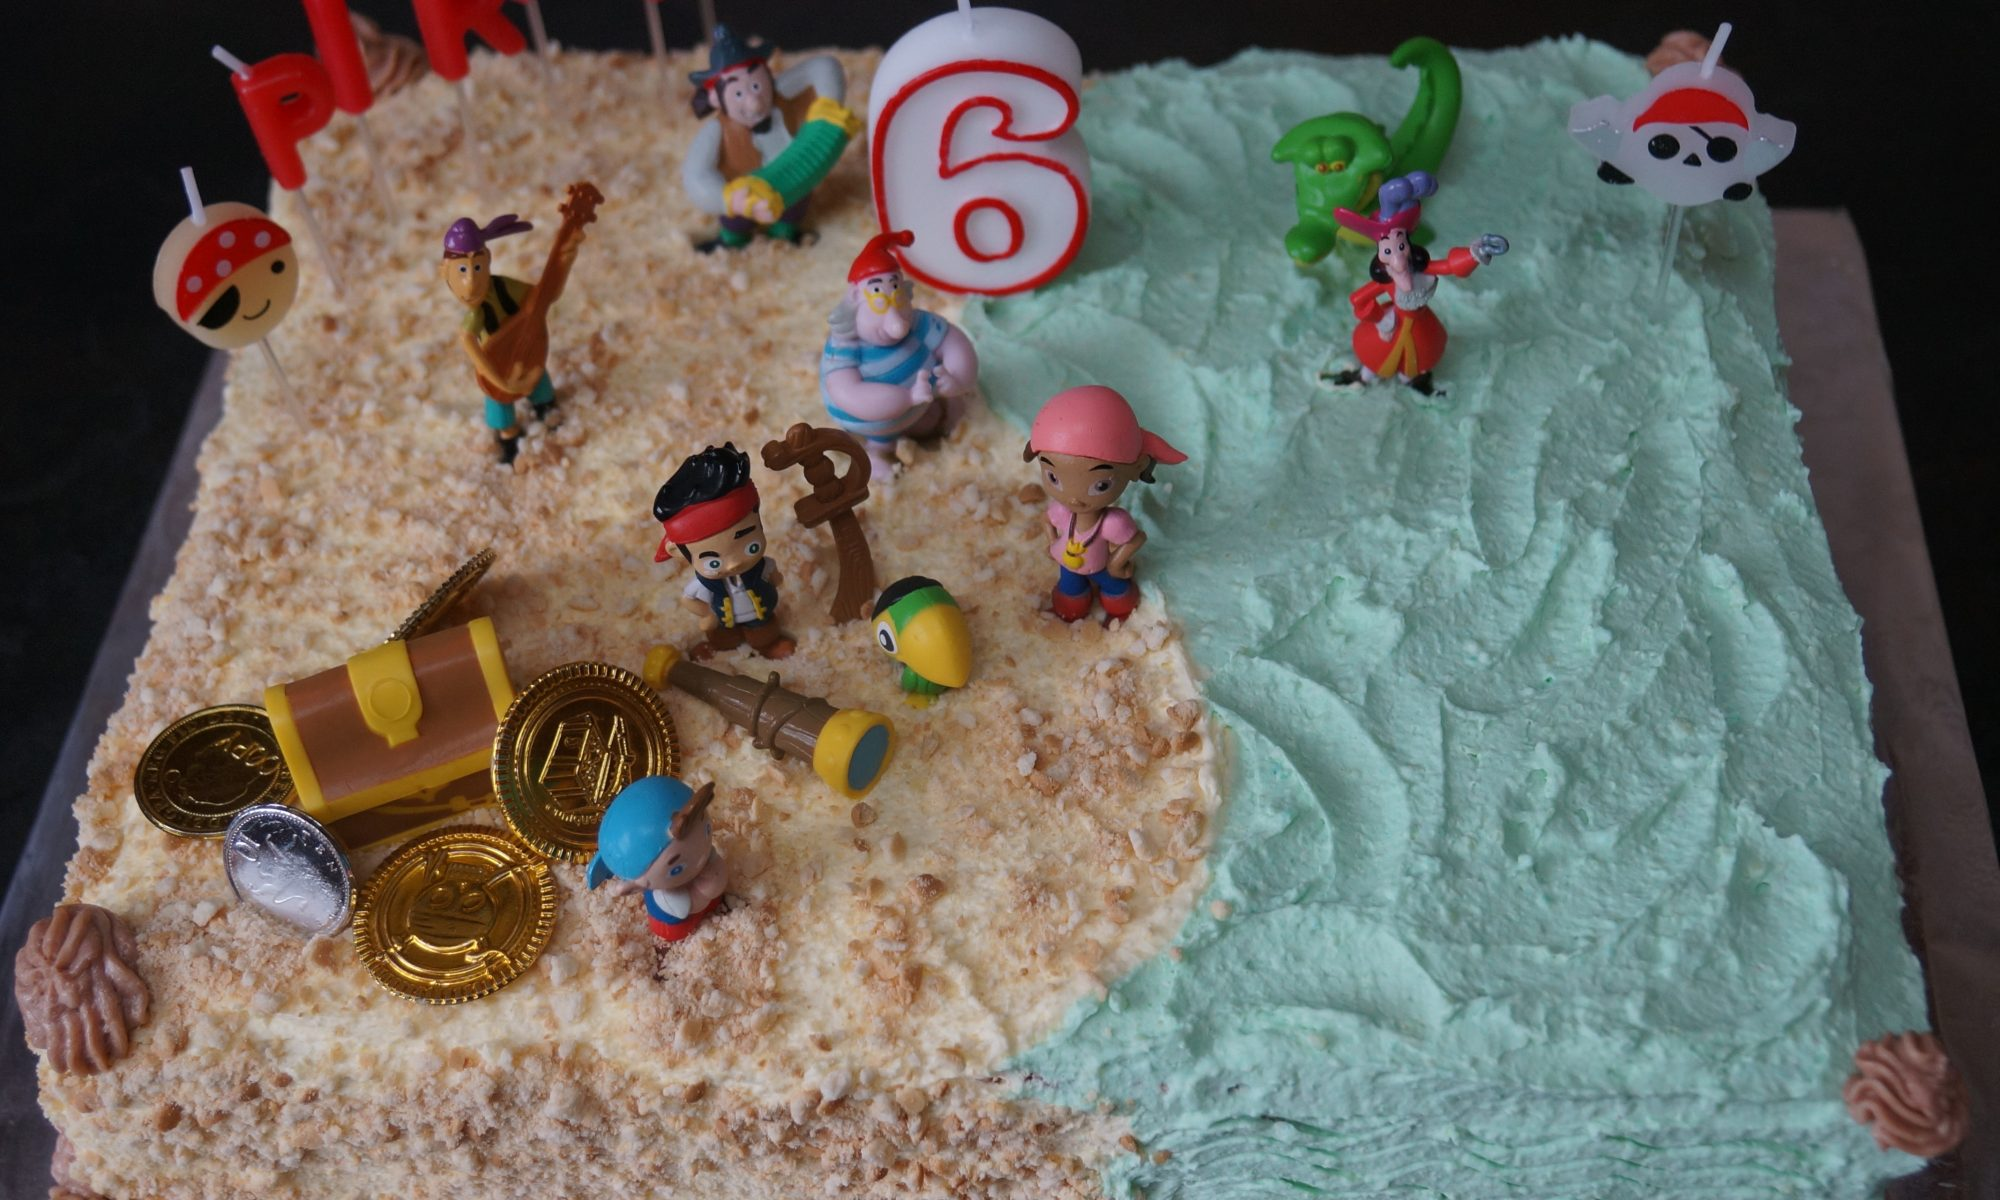 Astounding Jake And The Neverland Pirates Cake Natashas Cakes Funny Birthday Cards Online Inifodamsfinfo